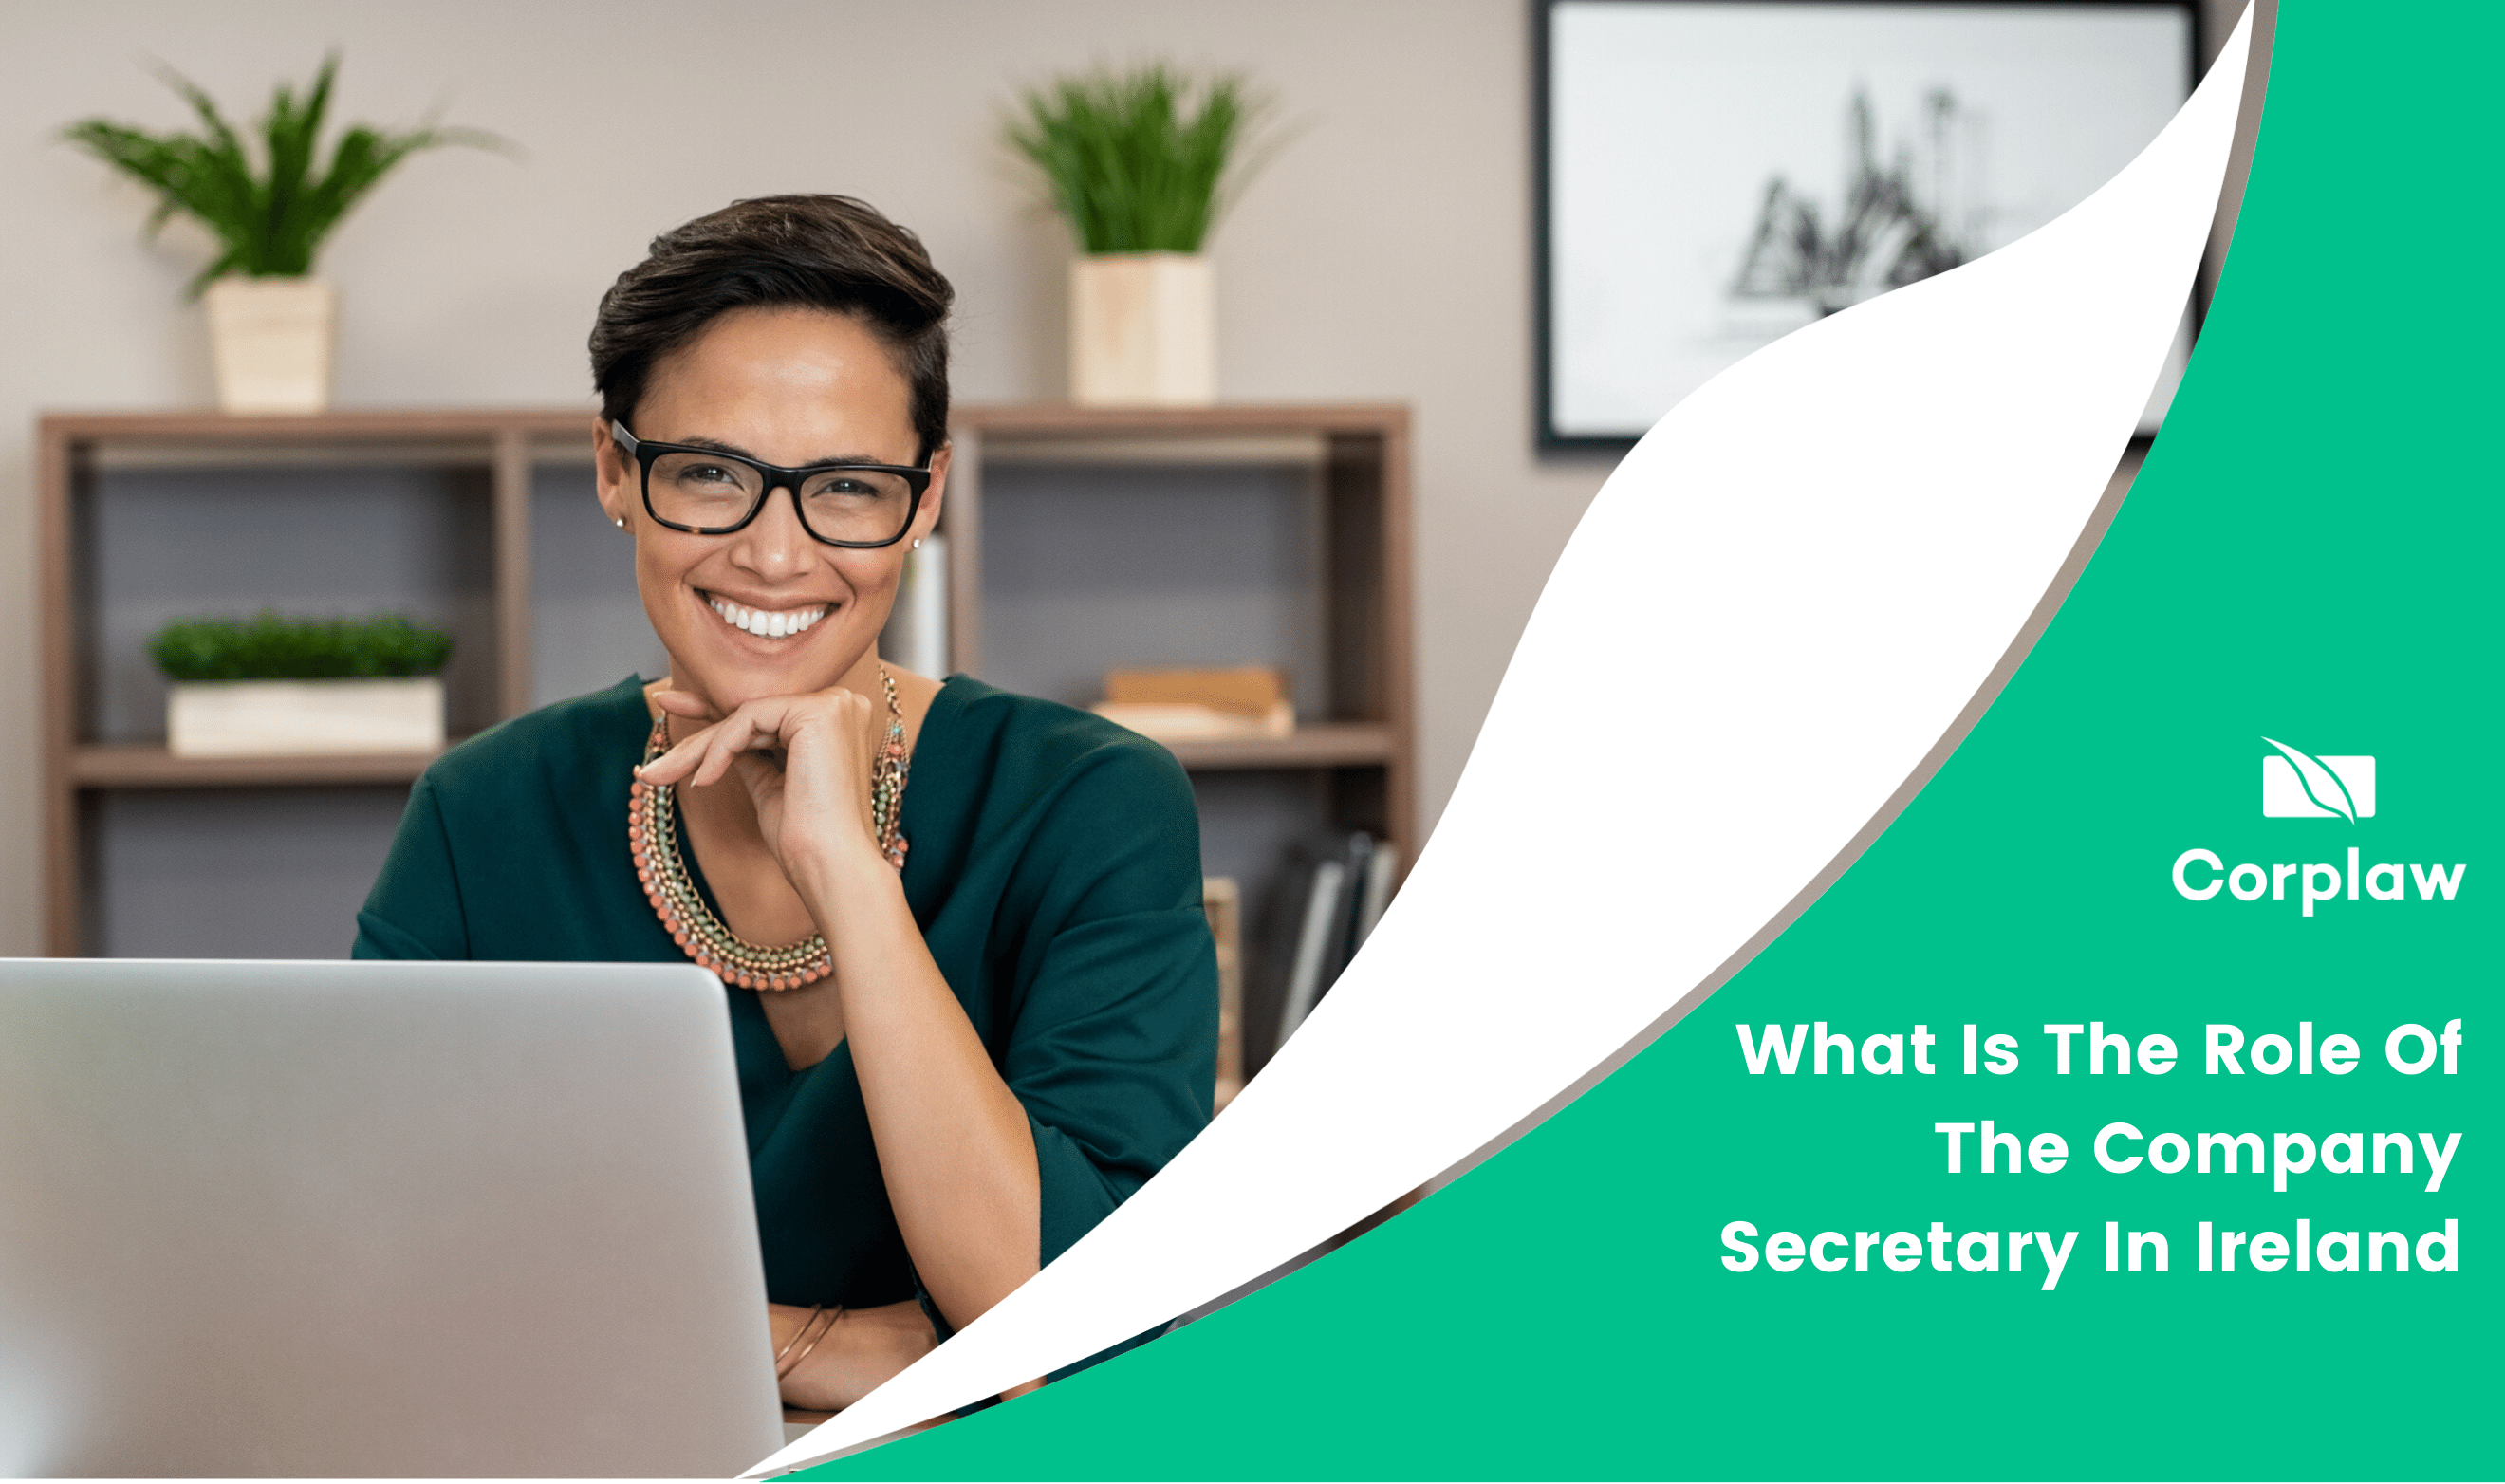 What Is The Role Of The Company Secretary In Ireland